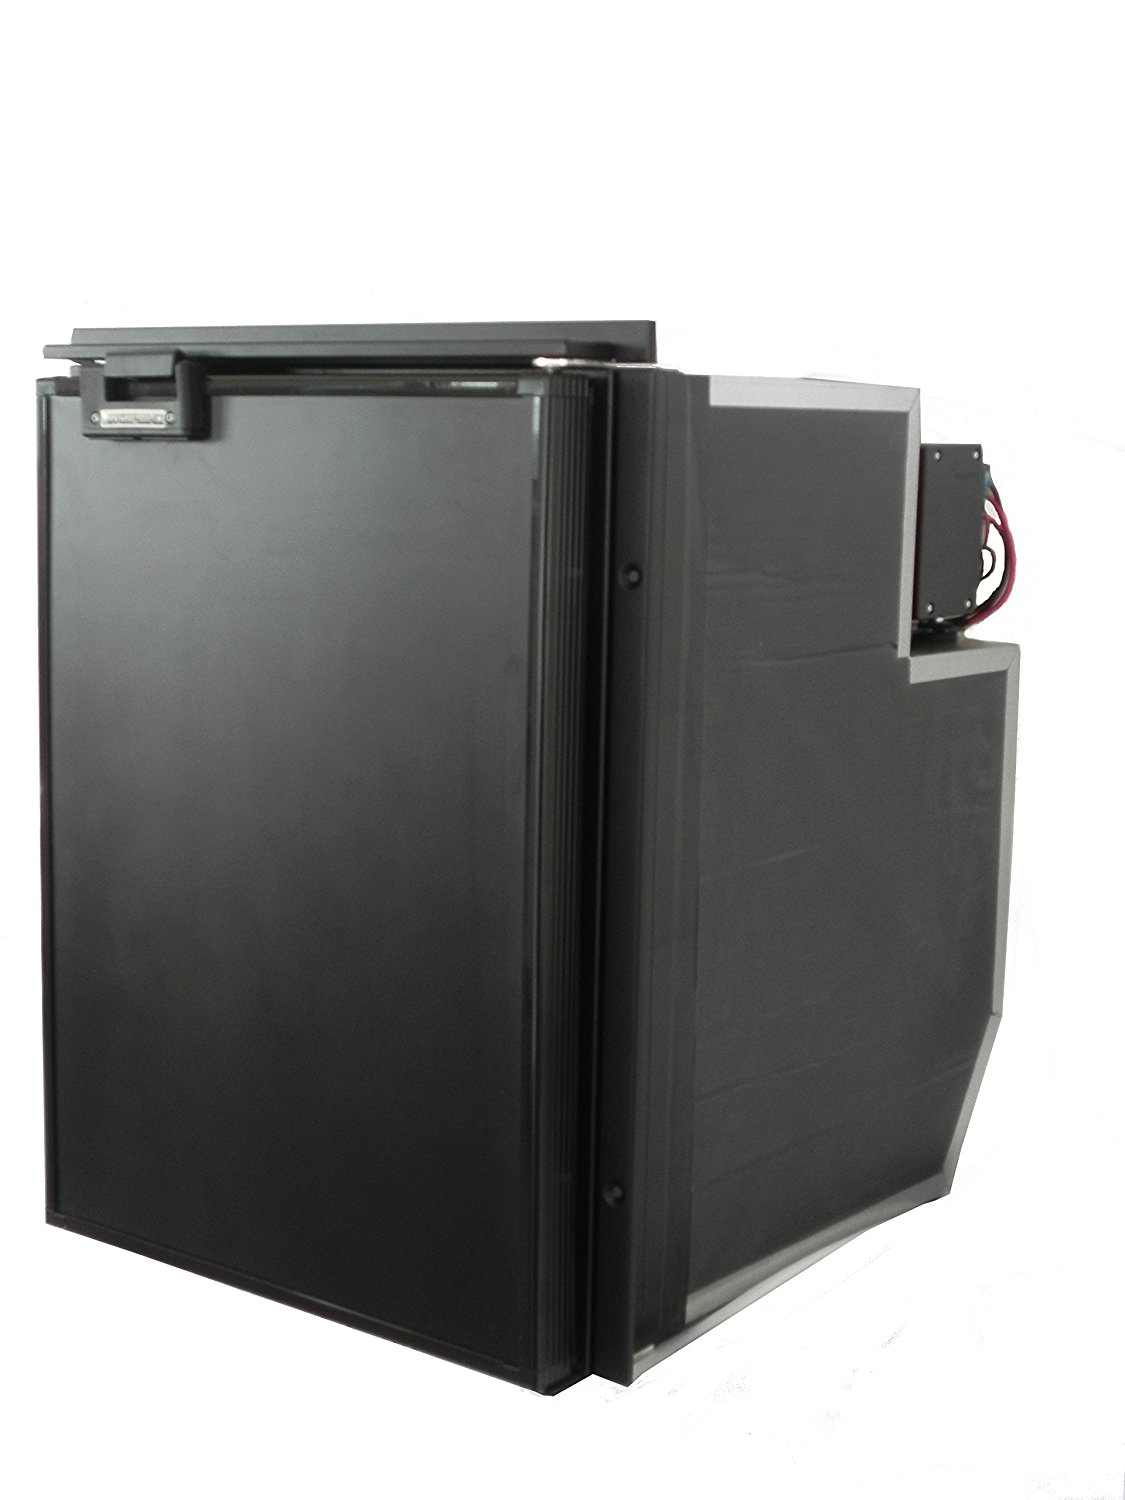 Indel B TF49 Black Refrigerator (for Commercial Vehicles 1.8 cubic feet 12vDC)